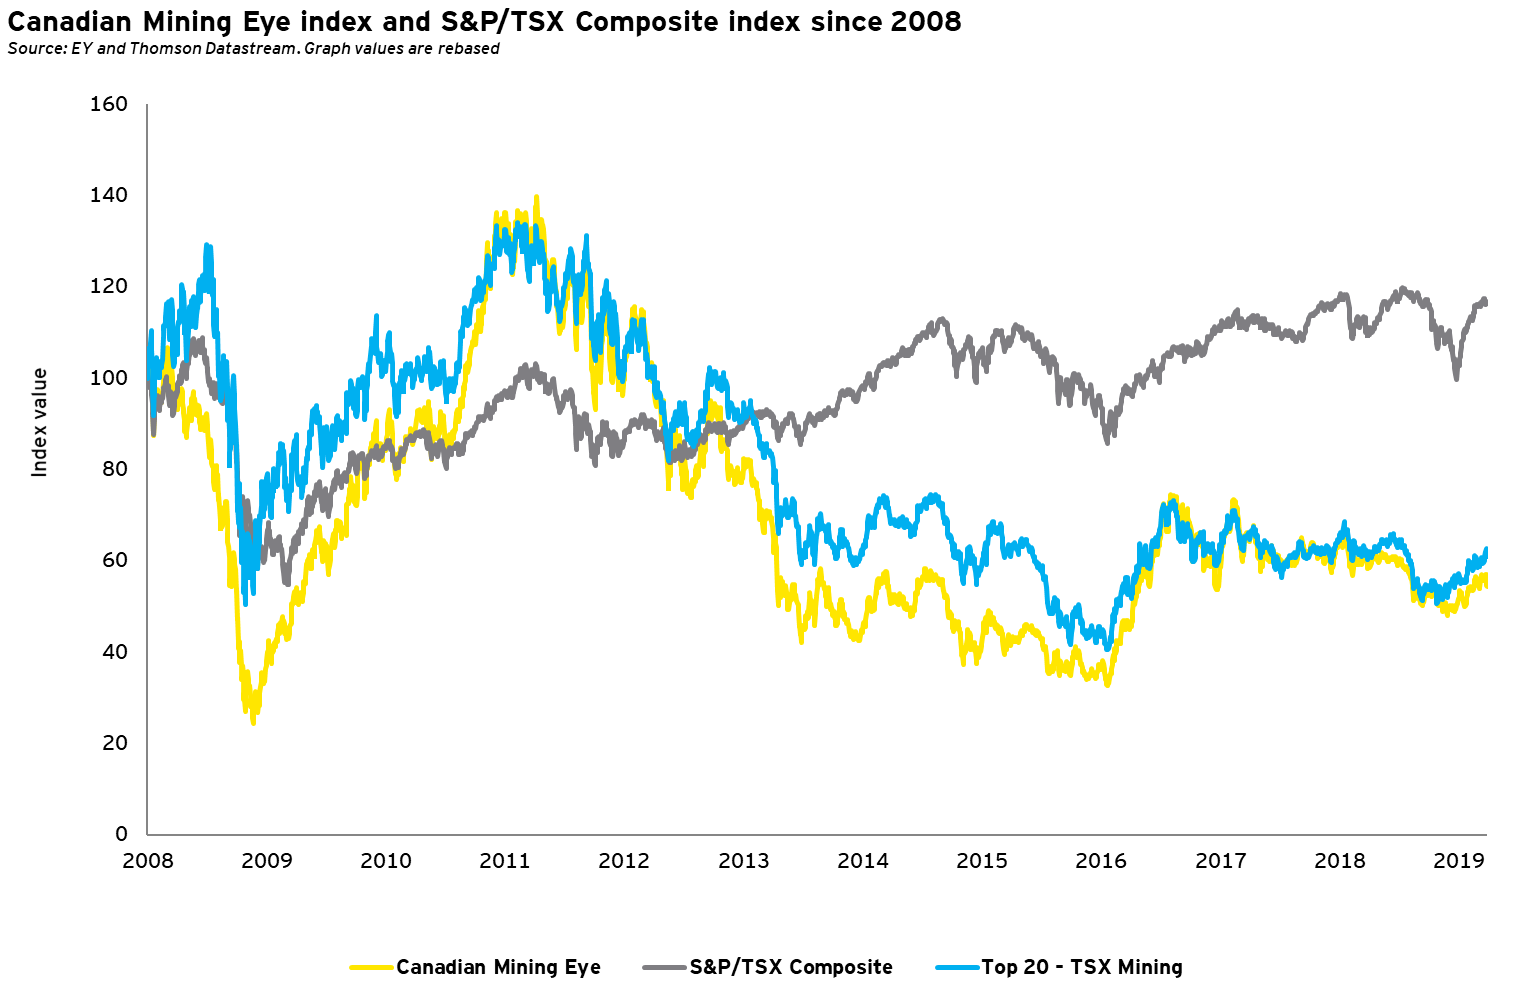 Mining Eye index and S&P/TSX Composite index since 2008 - Q1 2019